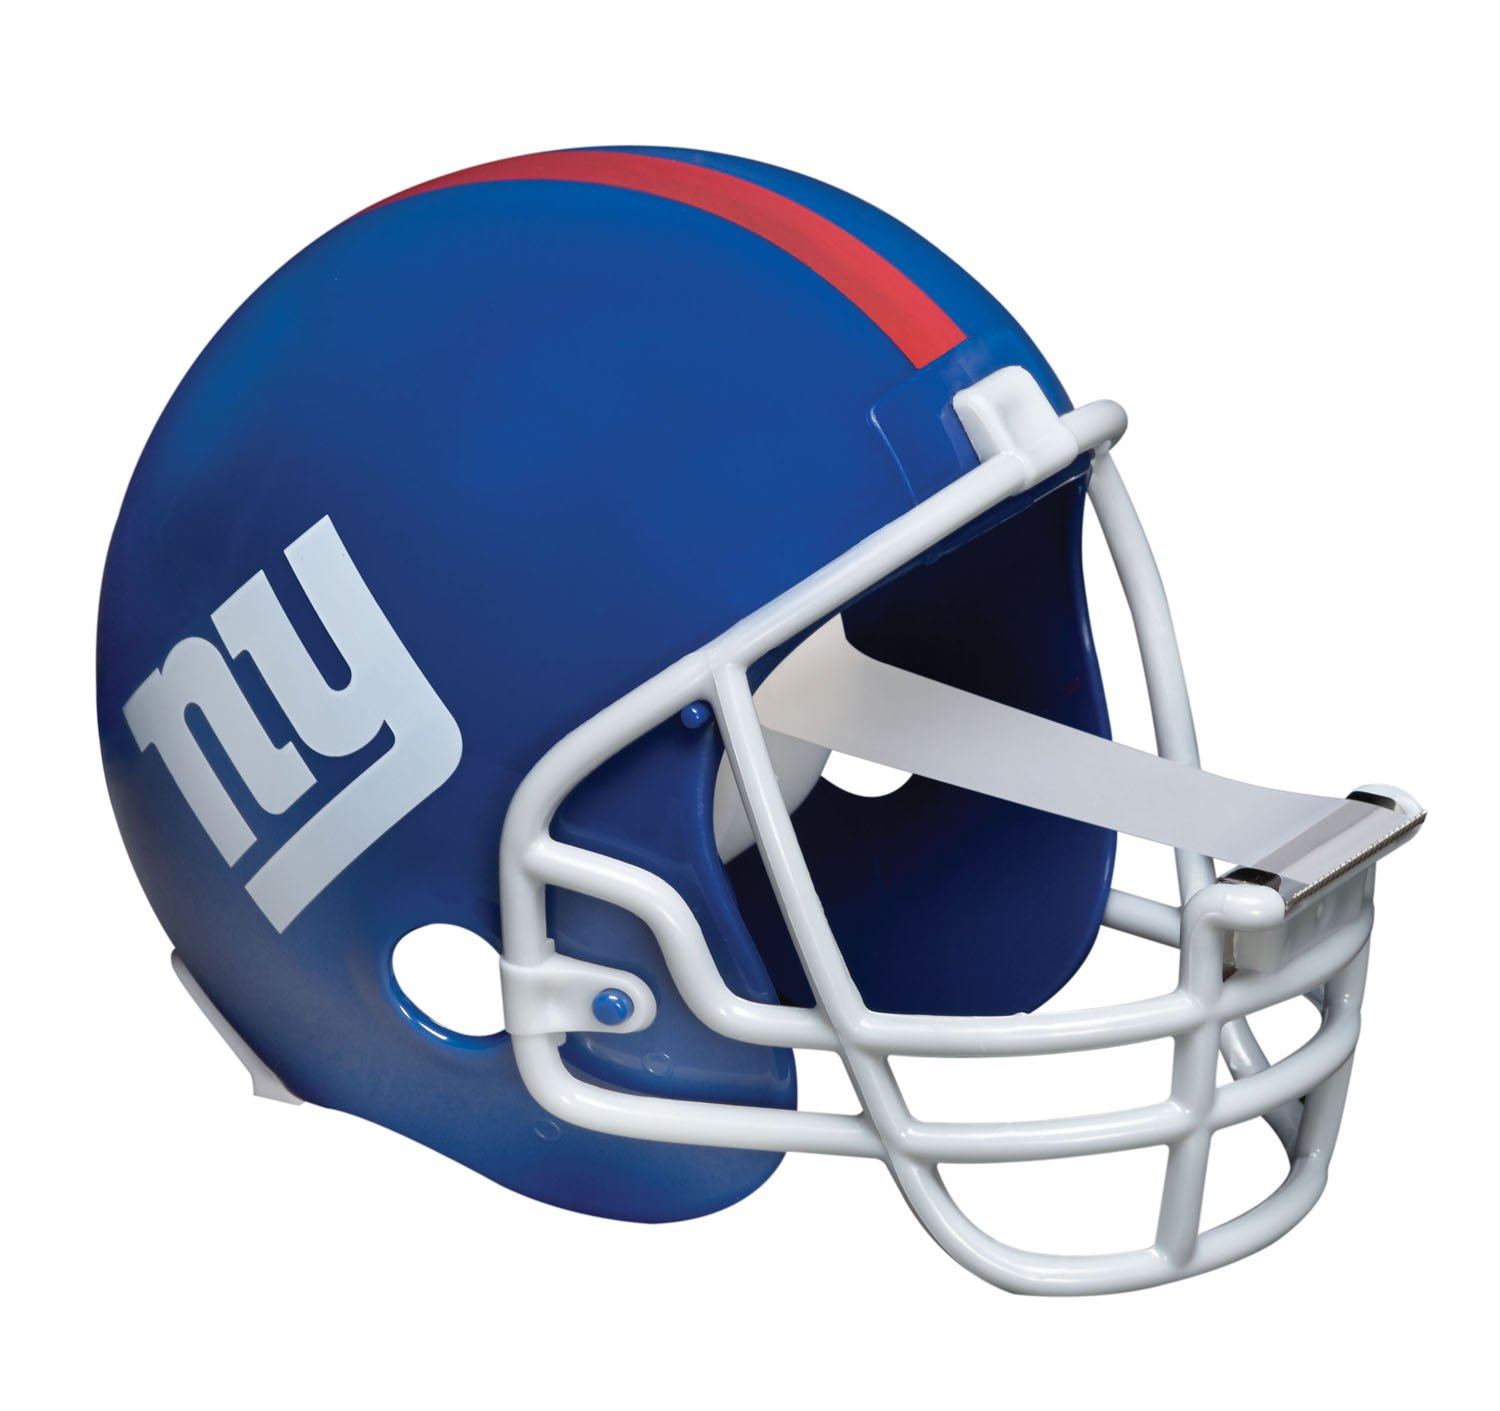 Scotch Magic Tape Dispenser, New York Giants Football Helmet with 1 Roll of 3/4 x 350 Inches Tape by Scotch